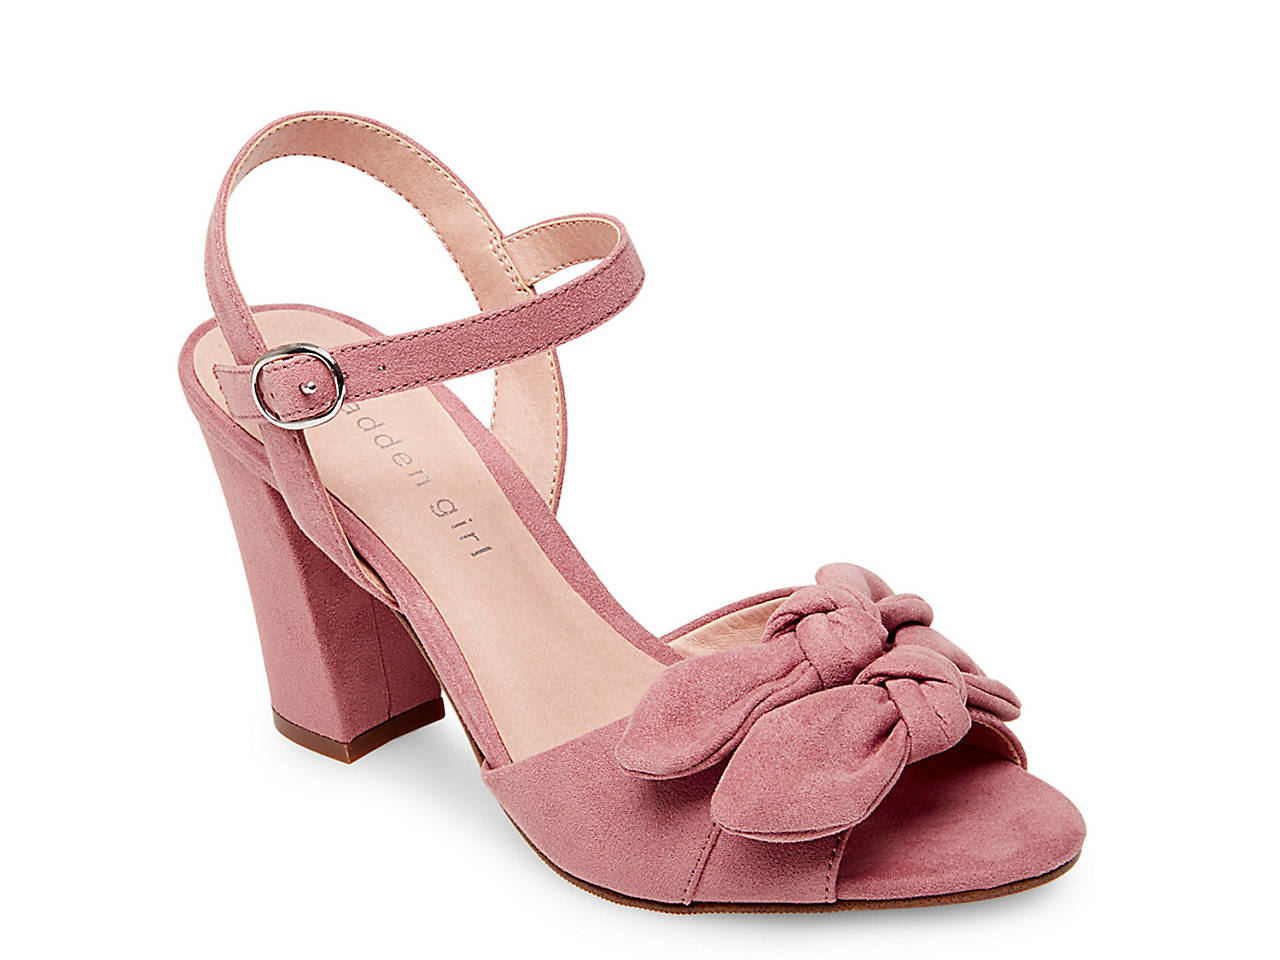 Bows Sandal by Madden Girl